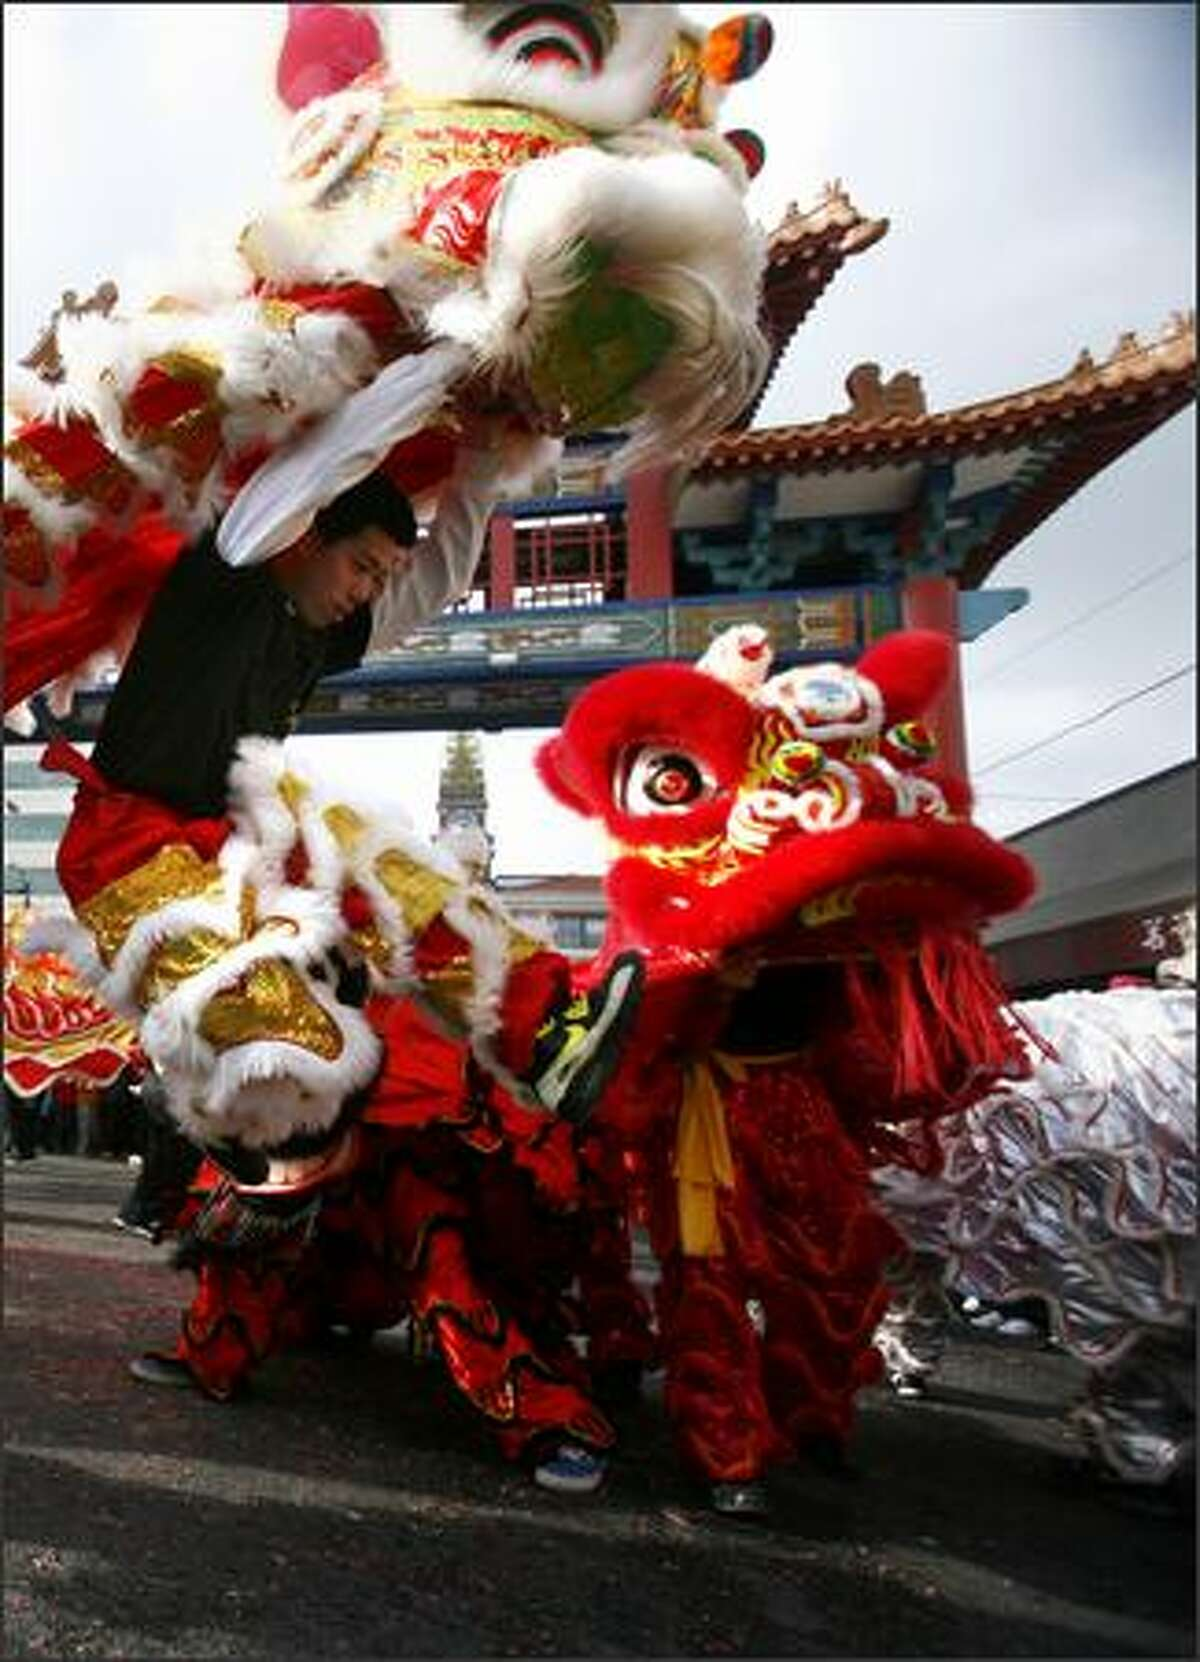 Members of the Mak Fai Washington Kung Fu Club perform a lion dance.